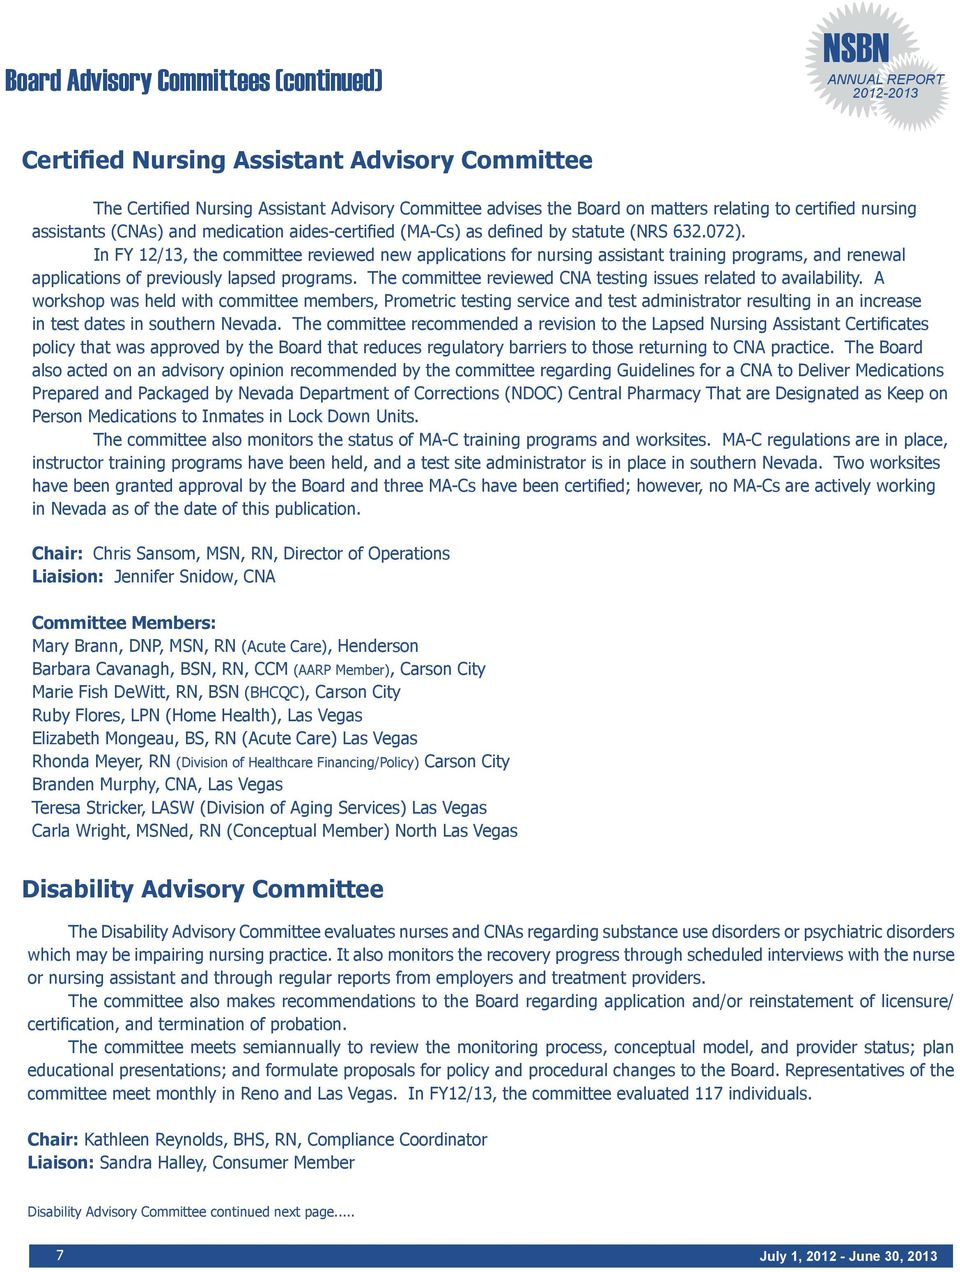 In FY 12/13, the committee reviewed new applications for nursing assistant training programs, and renewal applications of previously lapsed programs.